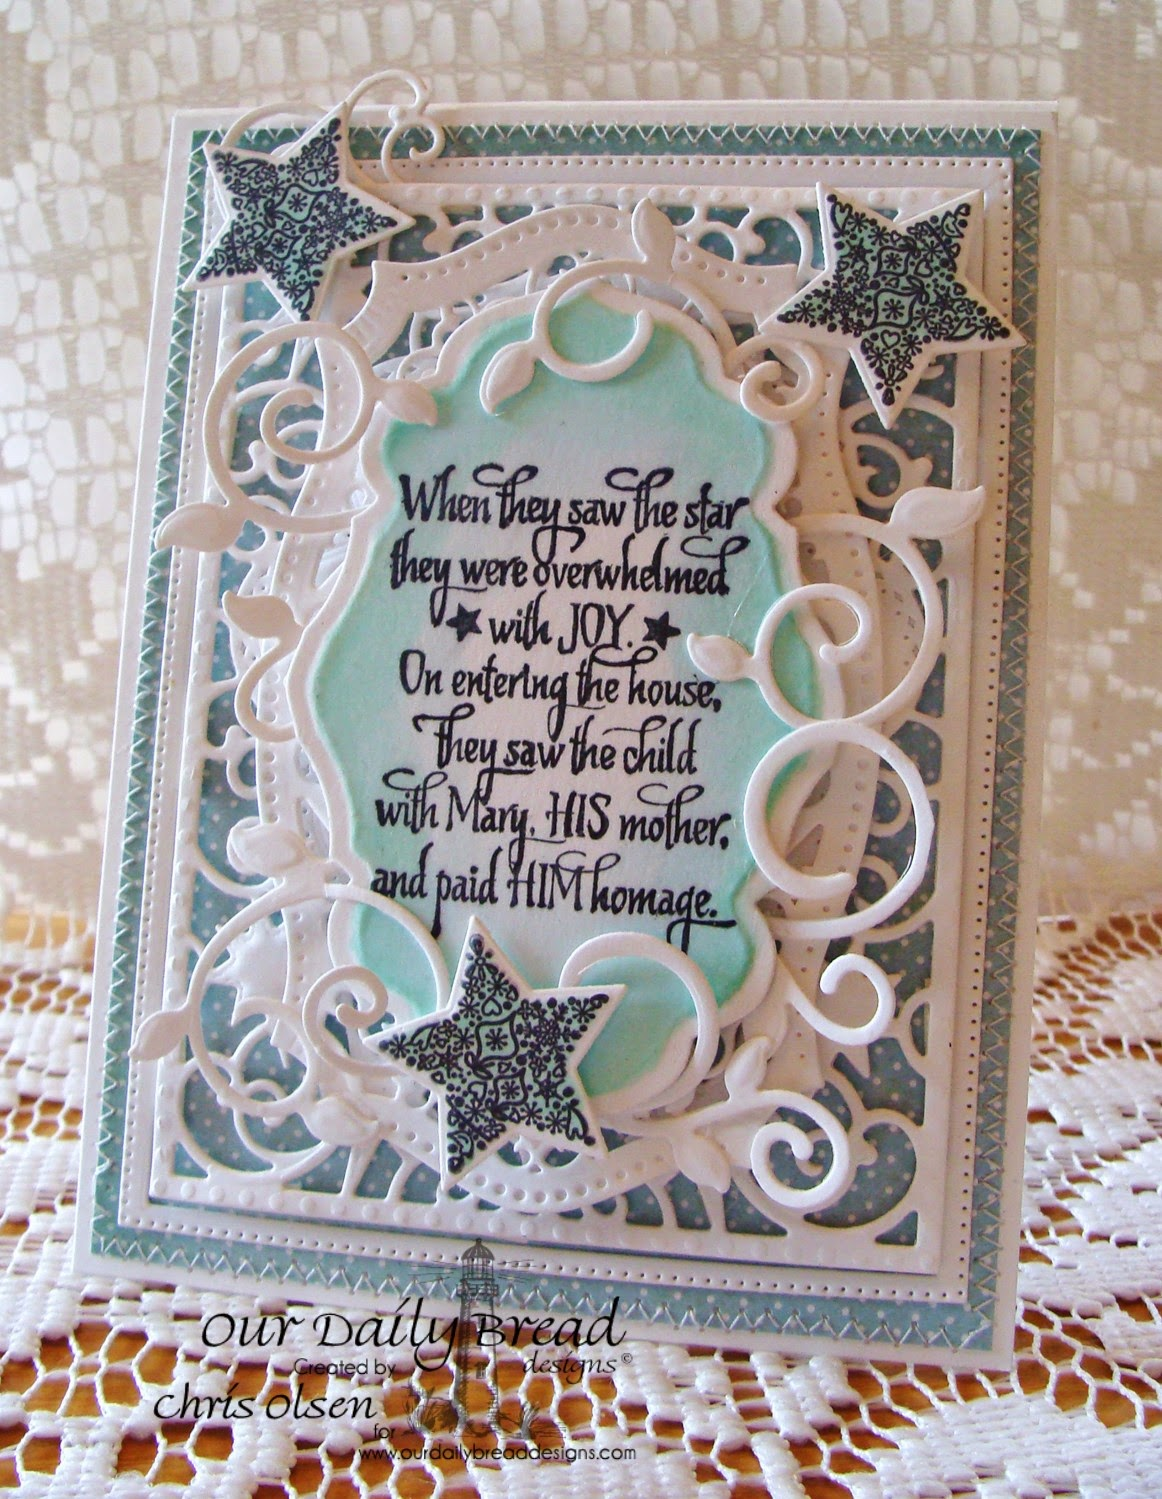 Our Daily Bread Designs, Come Let Us adore Him, His Birth, Sparkling Star dies, Flourished Star Pattern dies, Antique Labels dies, Christmas paper collection 2014, Designer-Chris Olsen